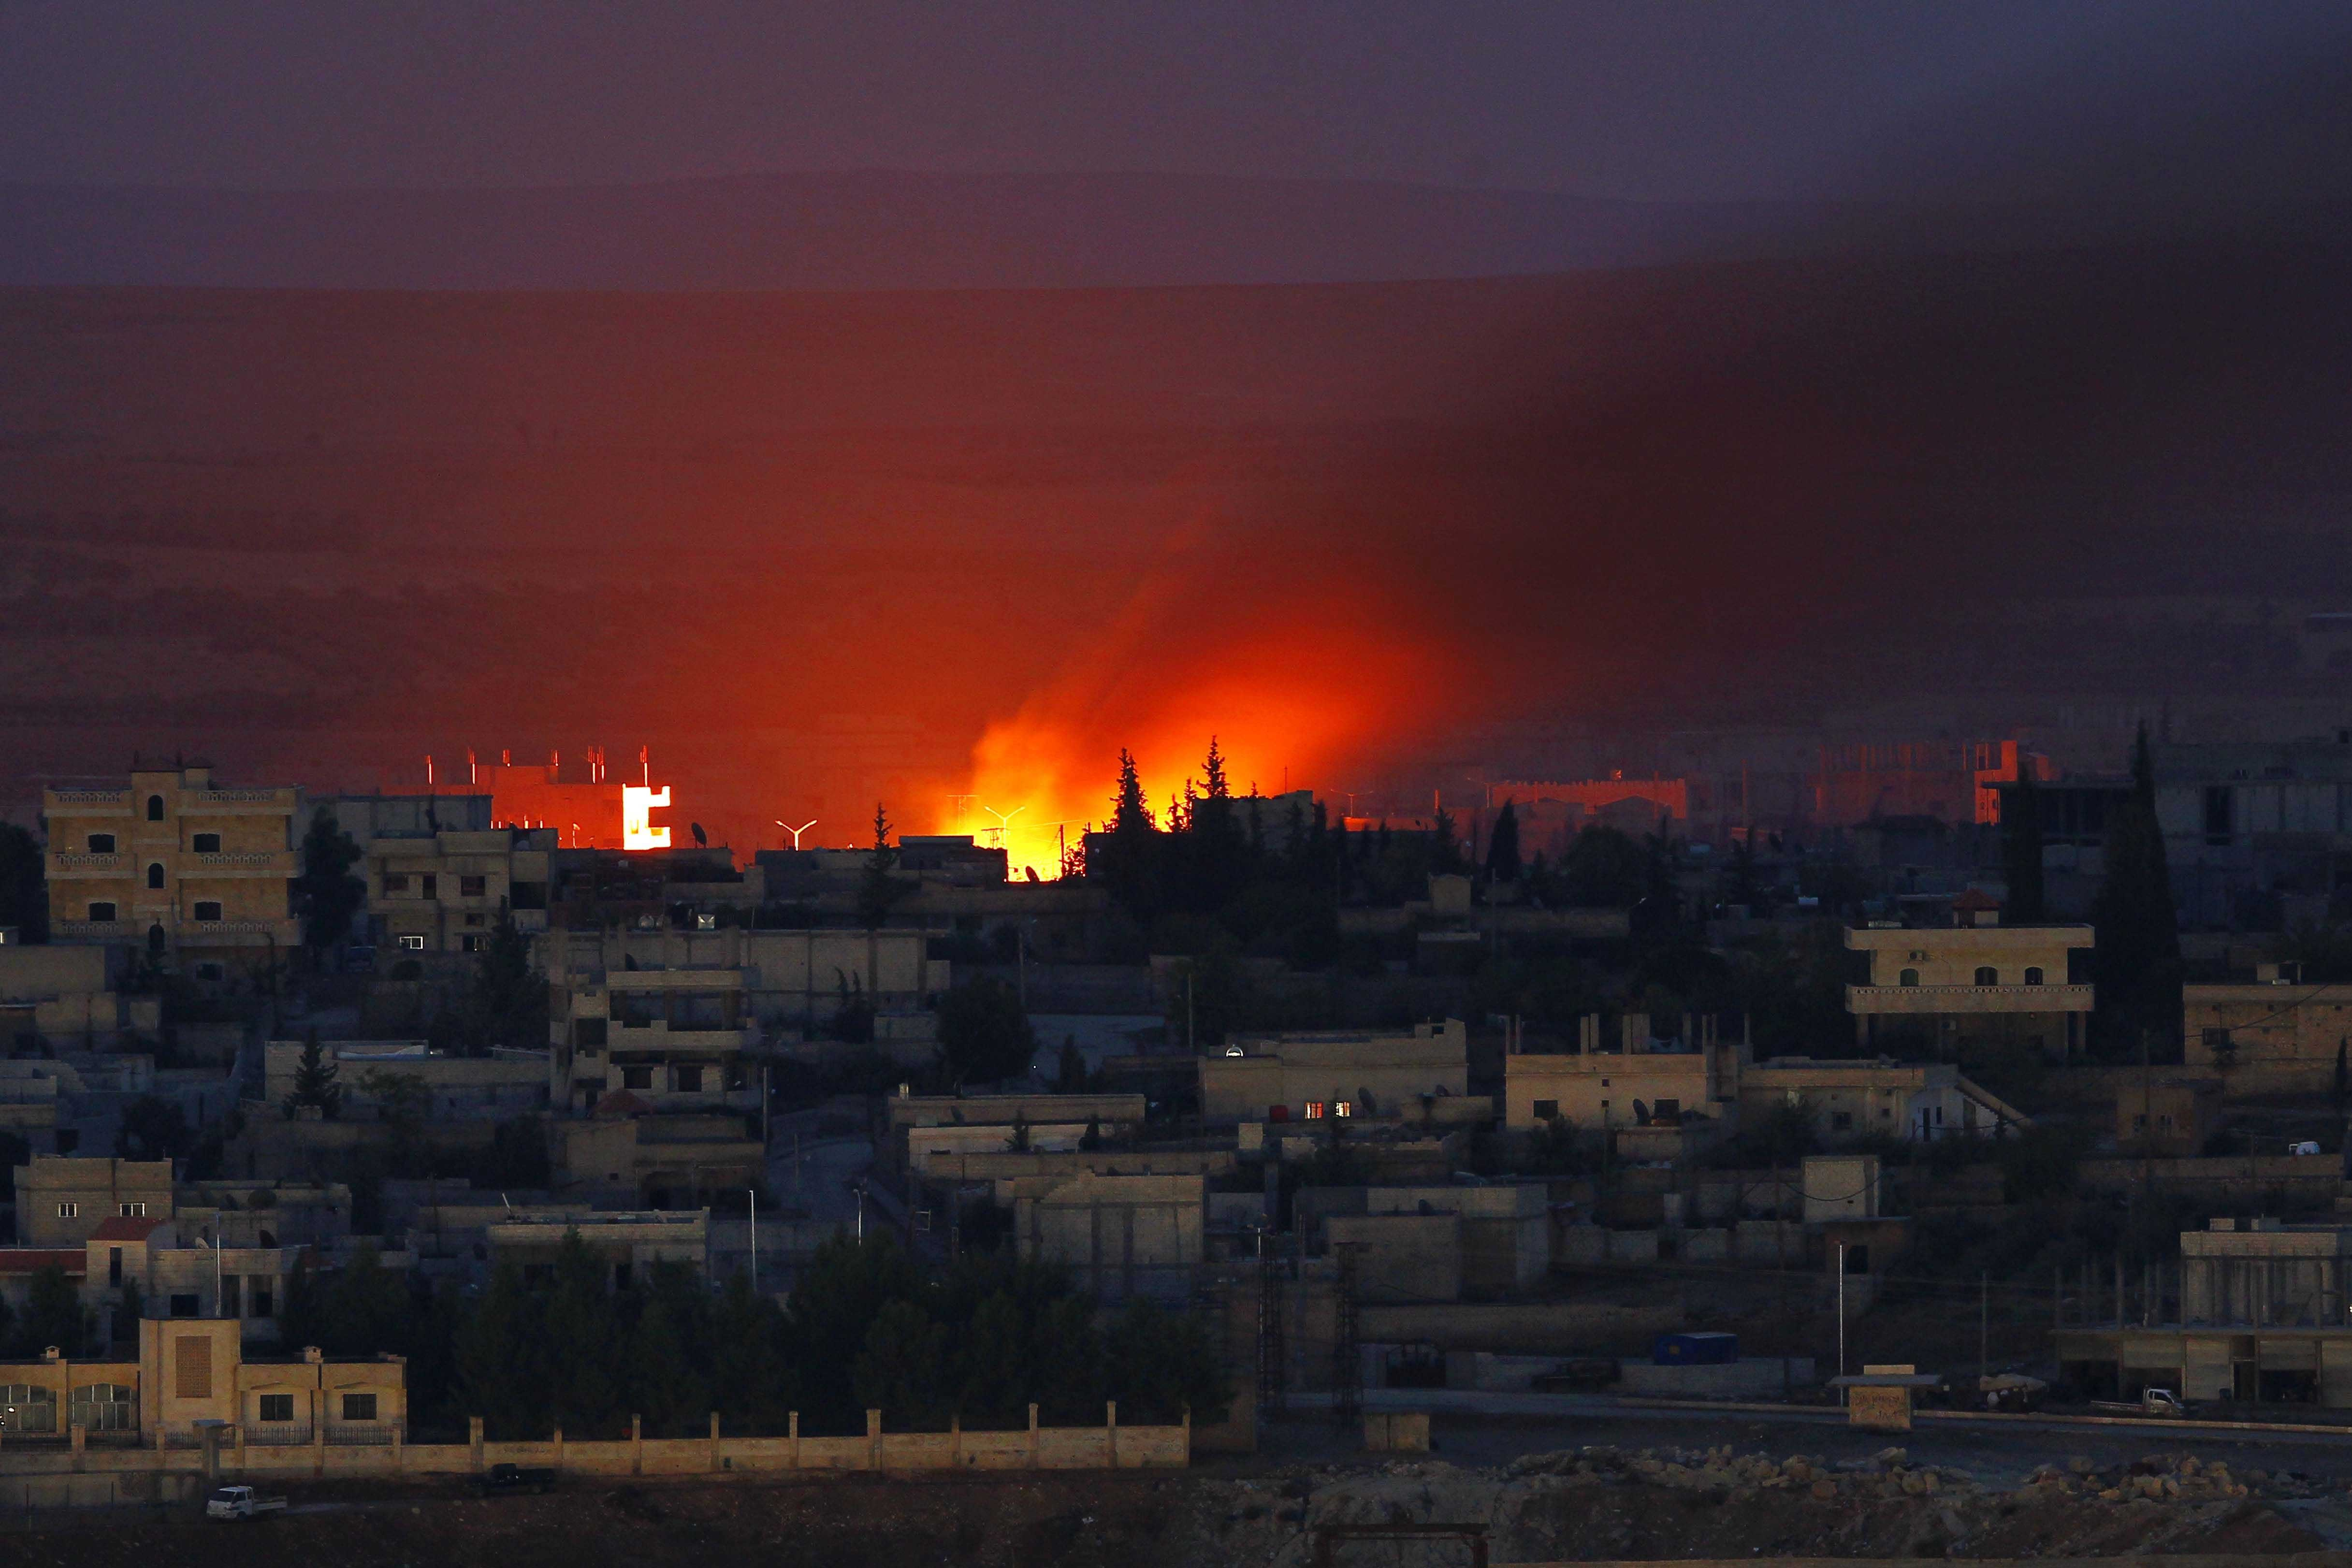 Fire is seen after an US airstrike on ISIS positions in Kobani, Syria, on Oct. 15, 2014.